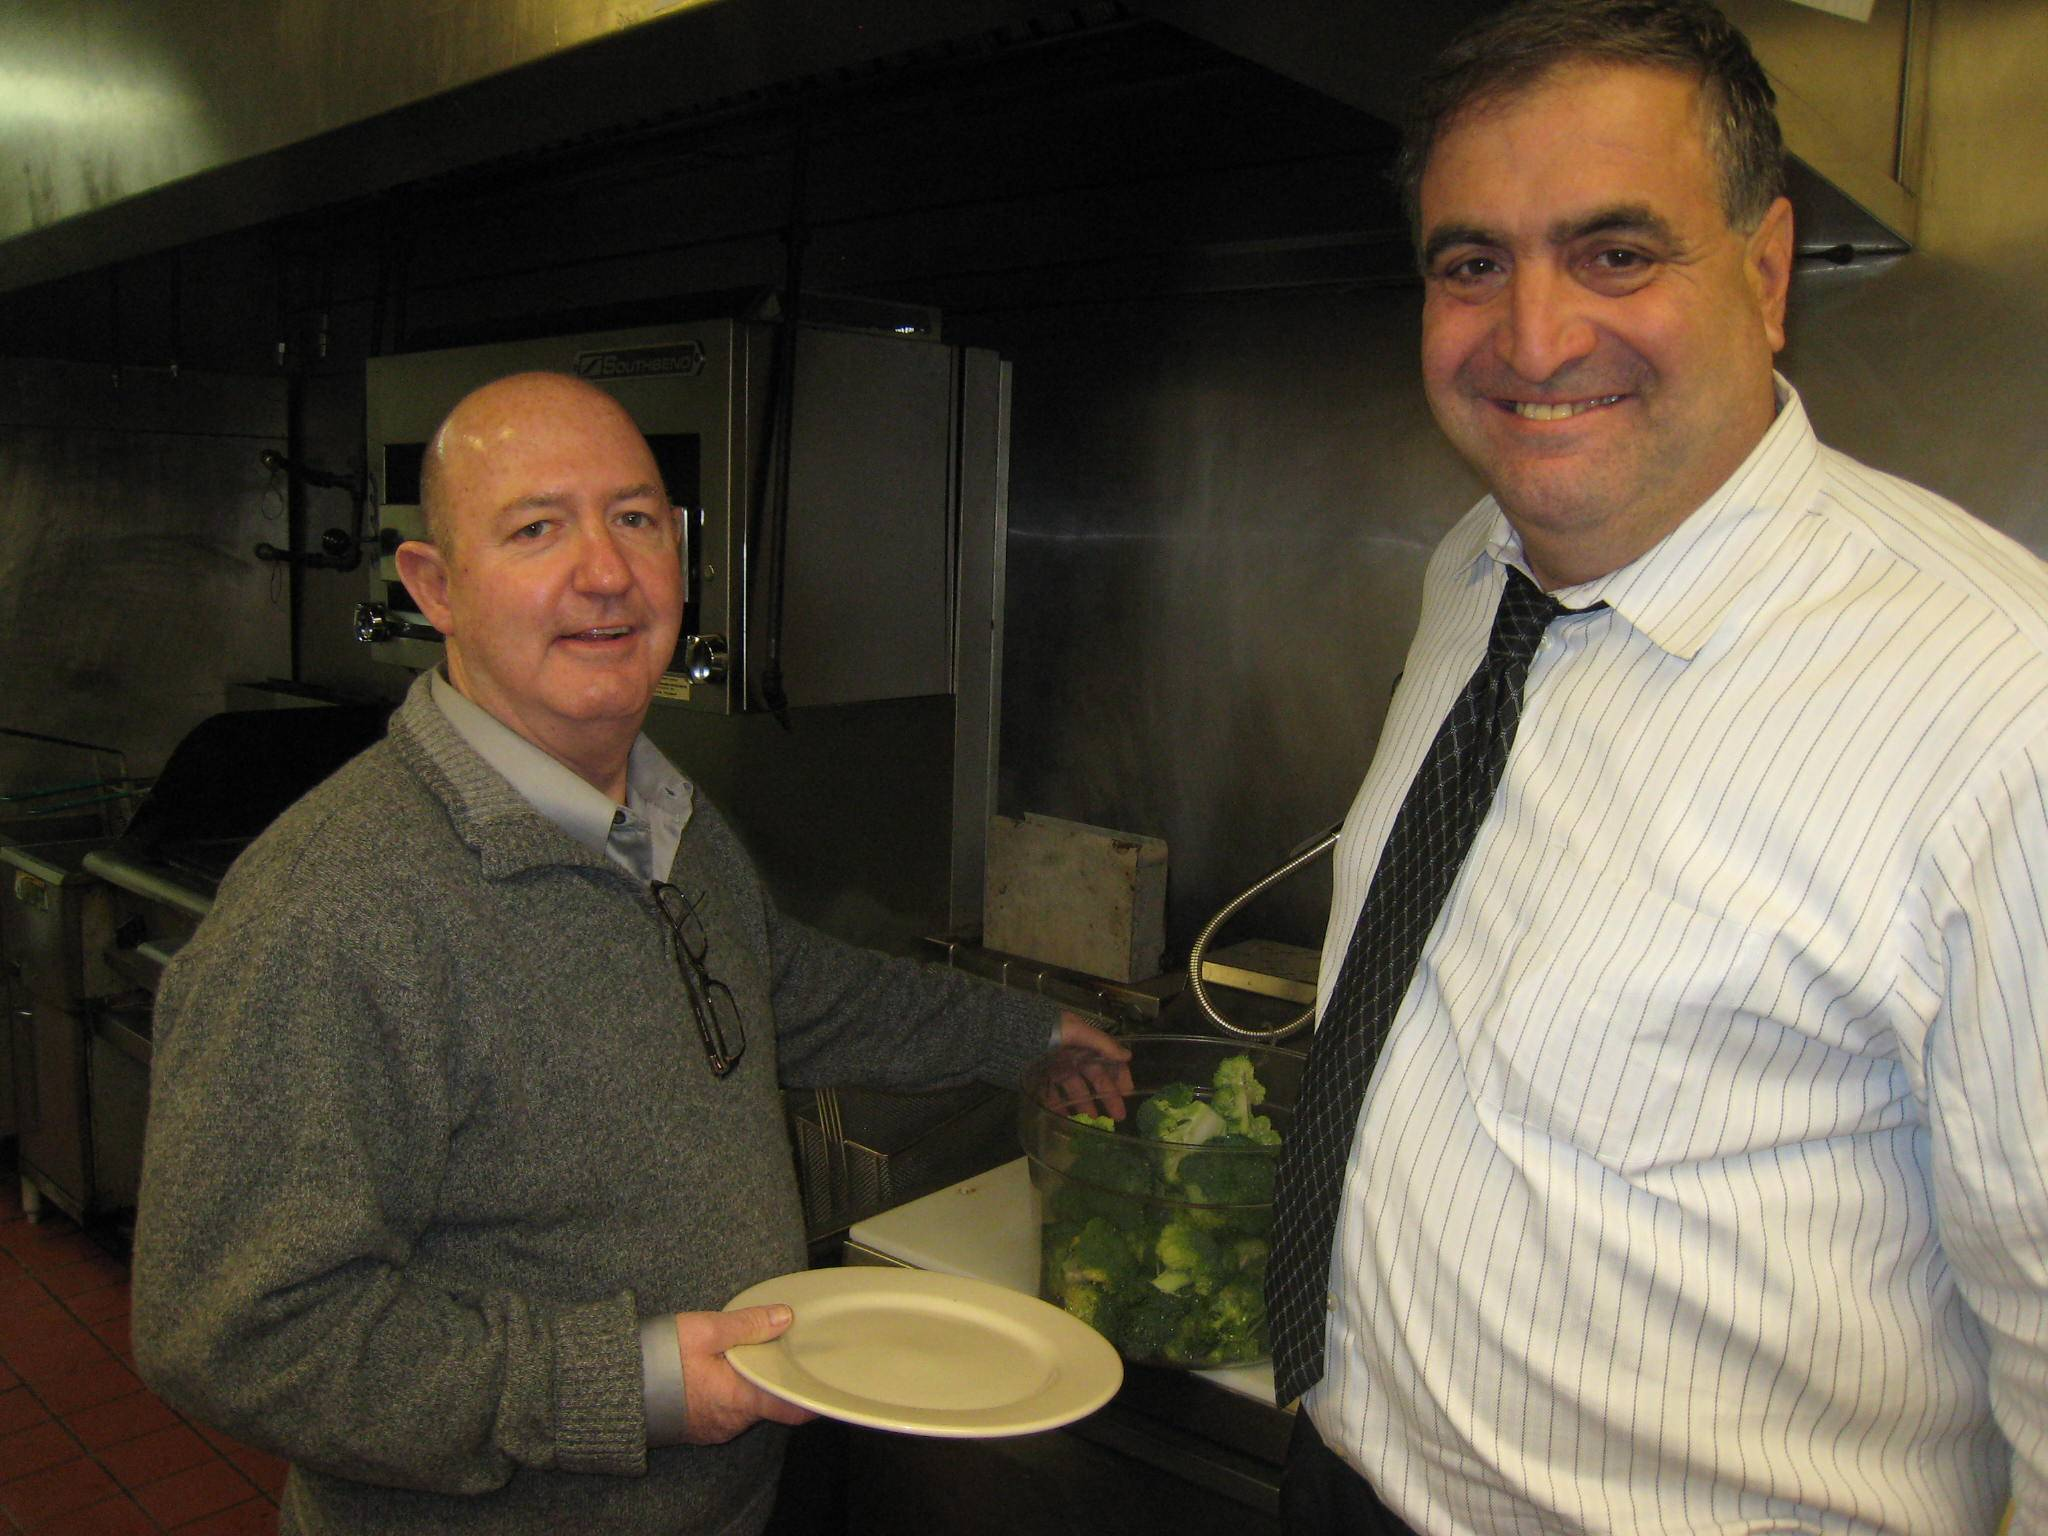 Kiwanis Pasta Chefs Bob Ciserella (left) and Carl Scolaro discuss the finer points of cooking in preparation for the Kiwanis Pasta Dinner.